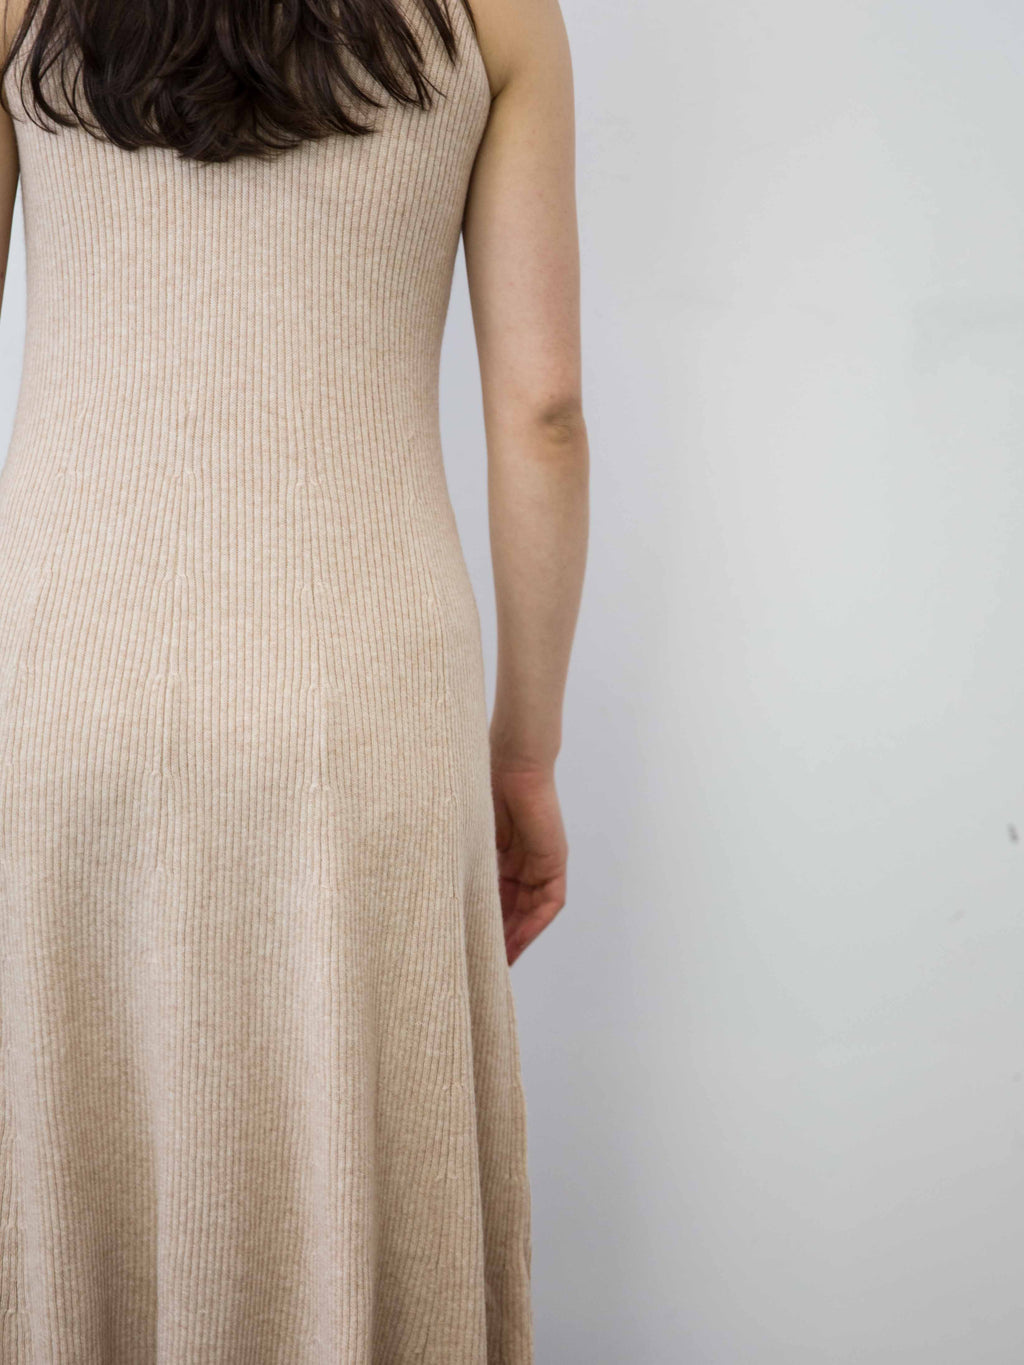 RYAN ROCHE Cashmere Ribbed Circle Dress